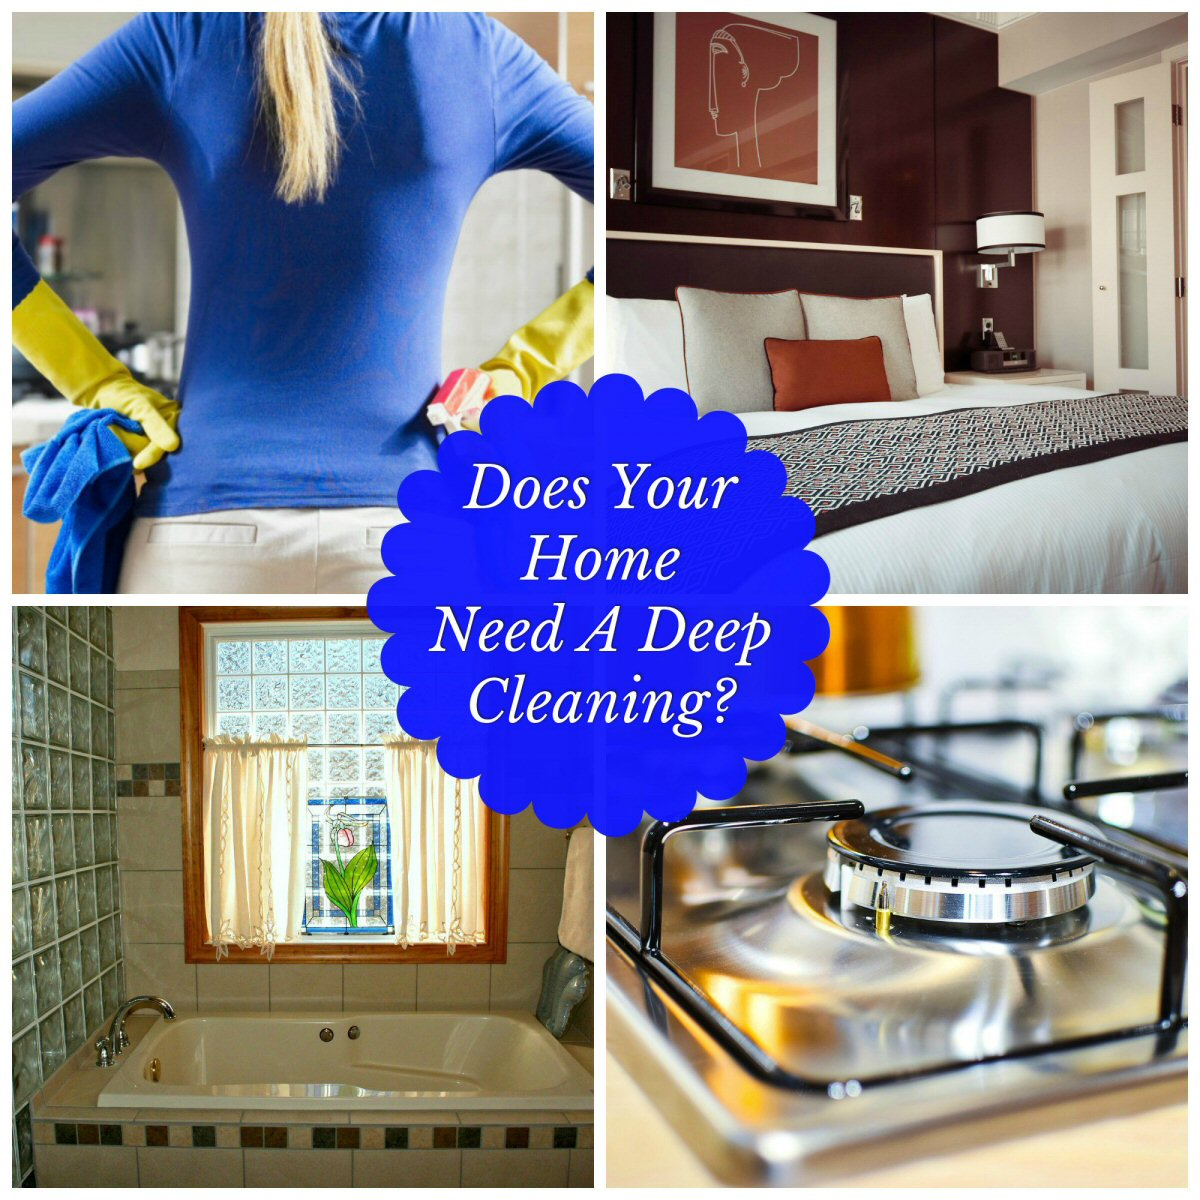 Does Your Home Need a Deep Cleaning? We all enjoy a neat and tidy space, but don't always want to do the work. This handy list of tips will help you get each room in tip top shape.